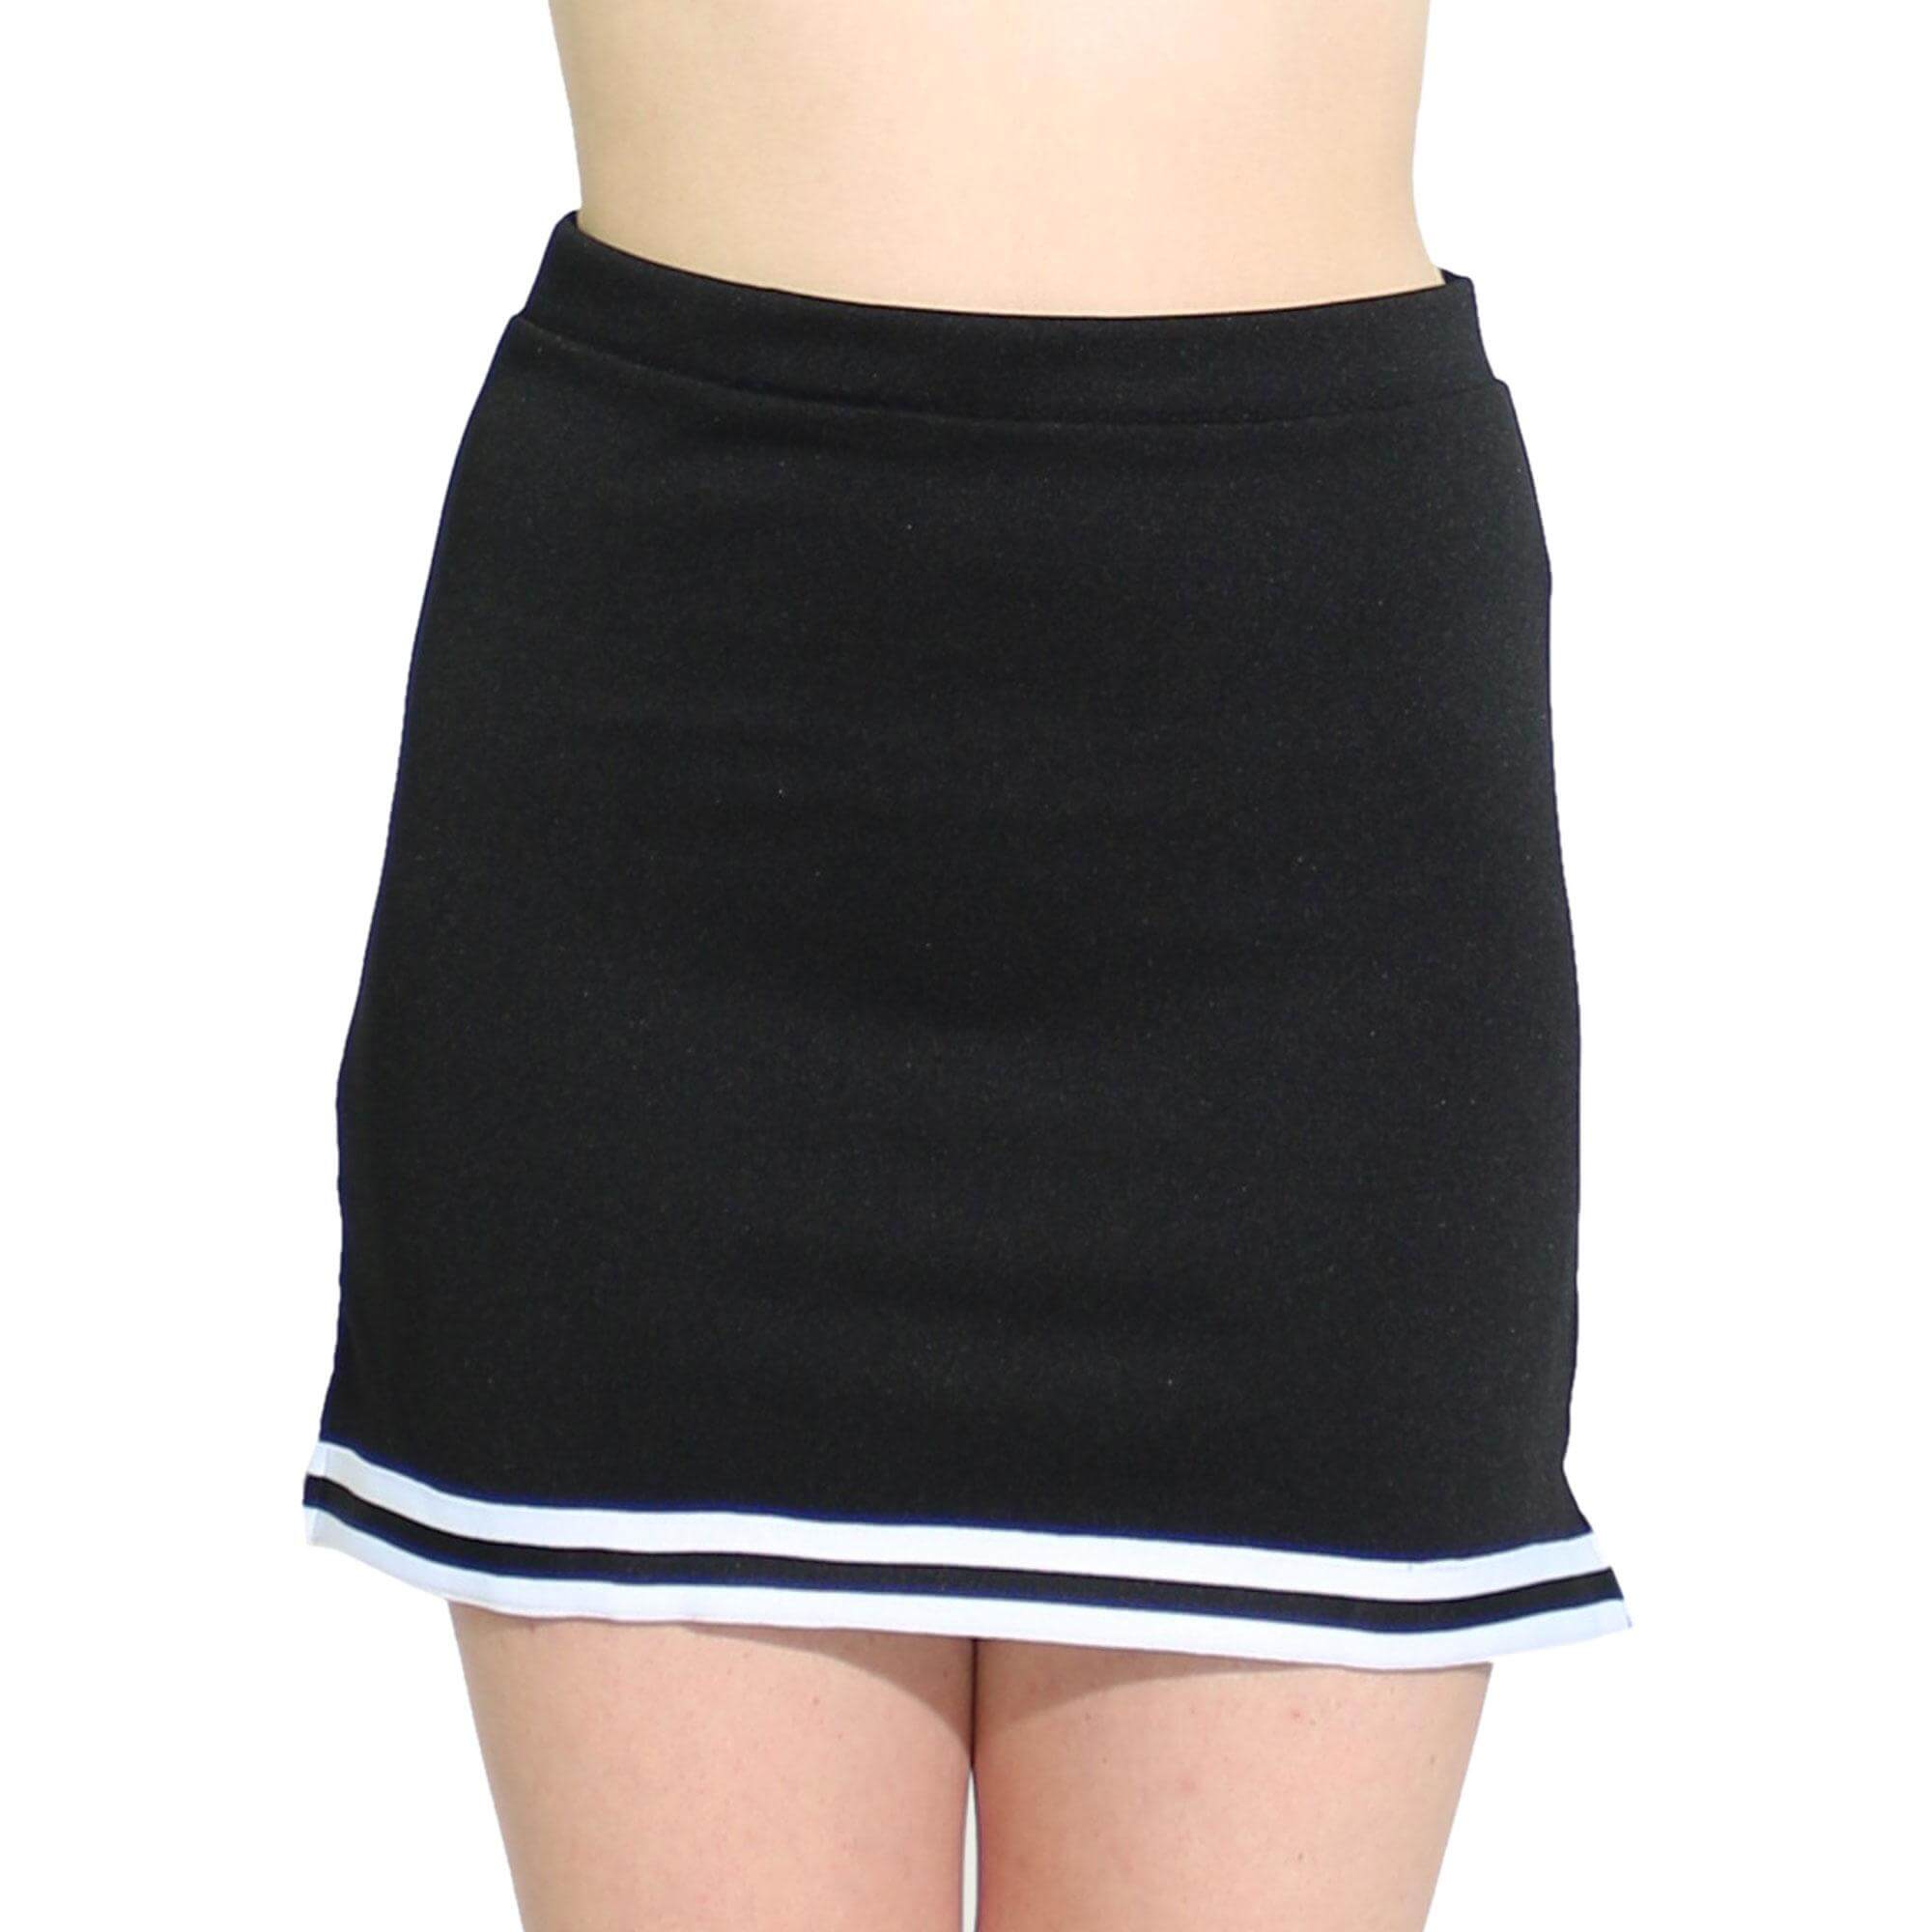 Danzcue Adult A-Line Cheerleaders Uniform Skirt